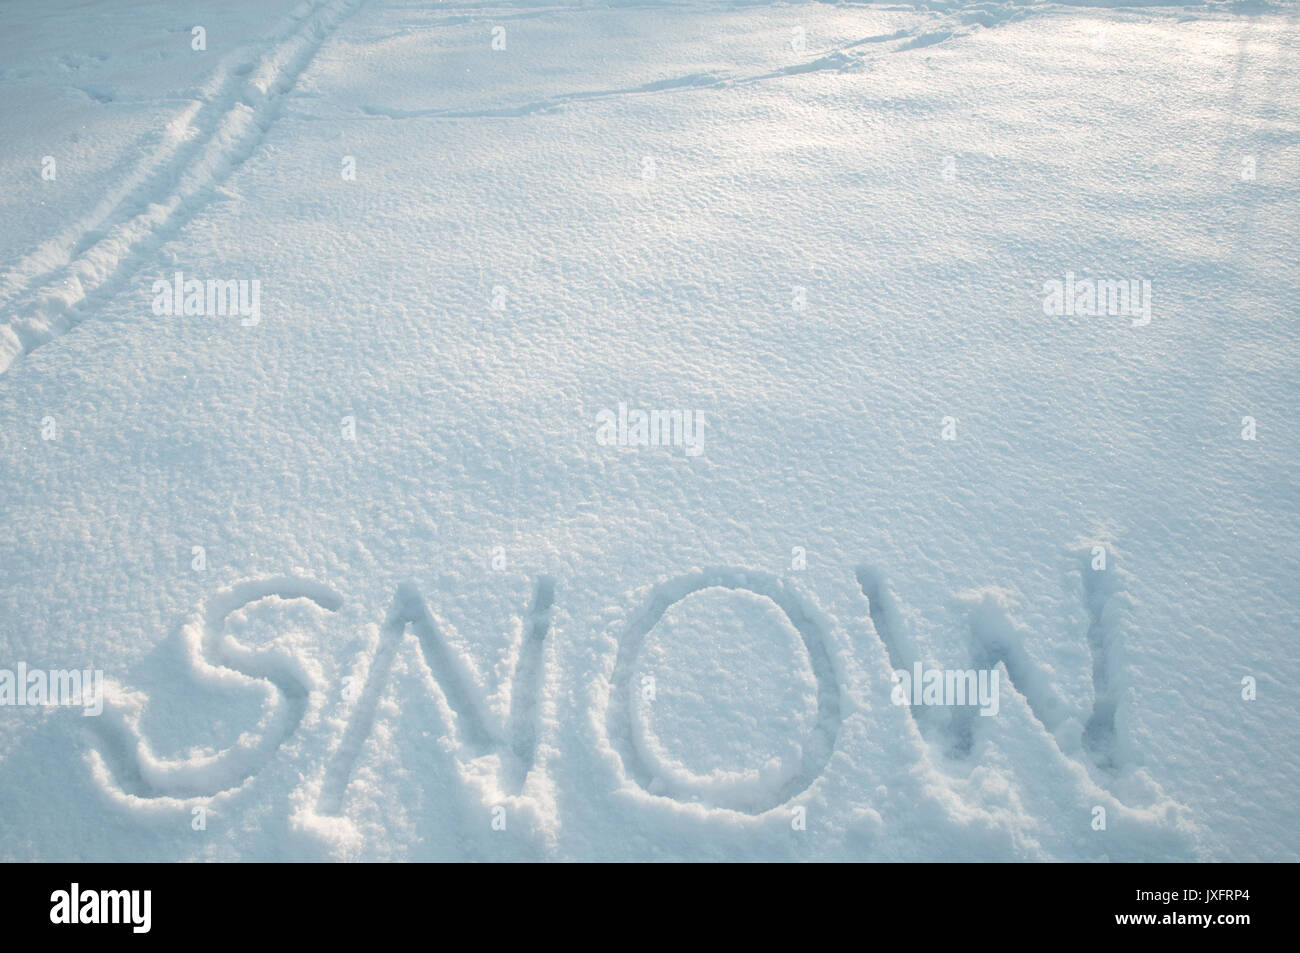 the word snow written in freshly fallen snow - Stock Image